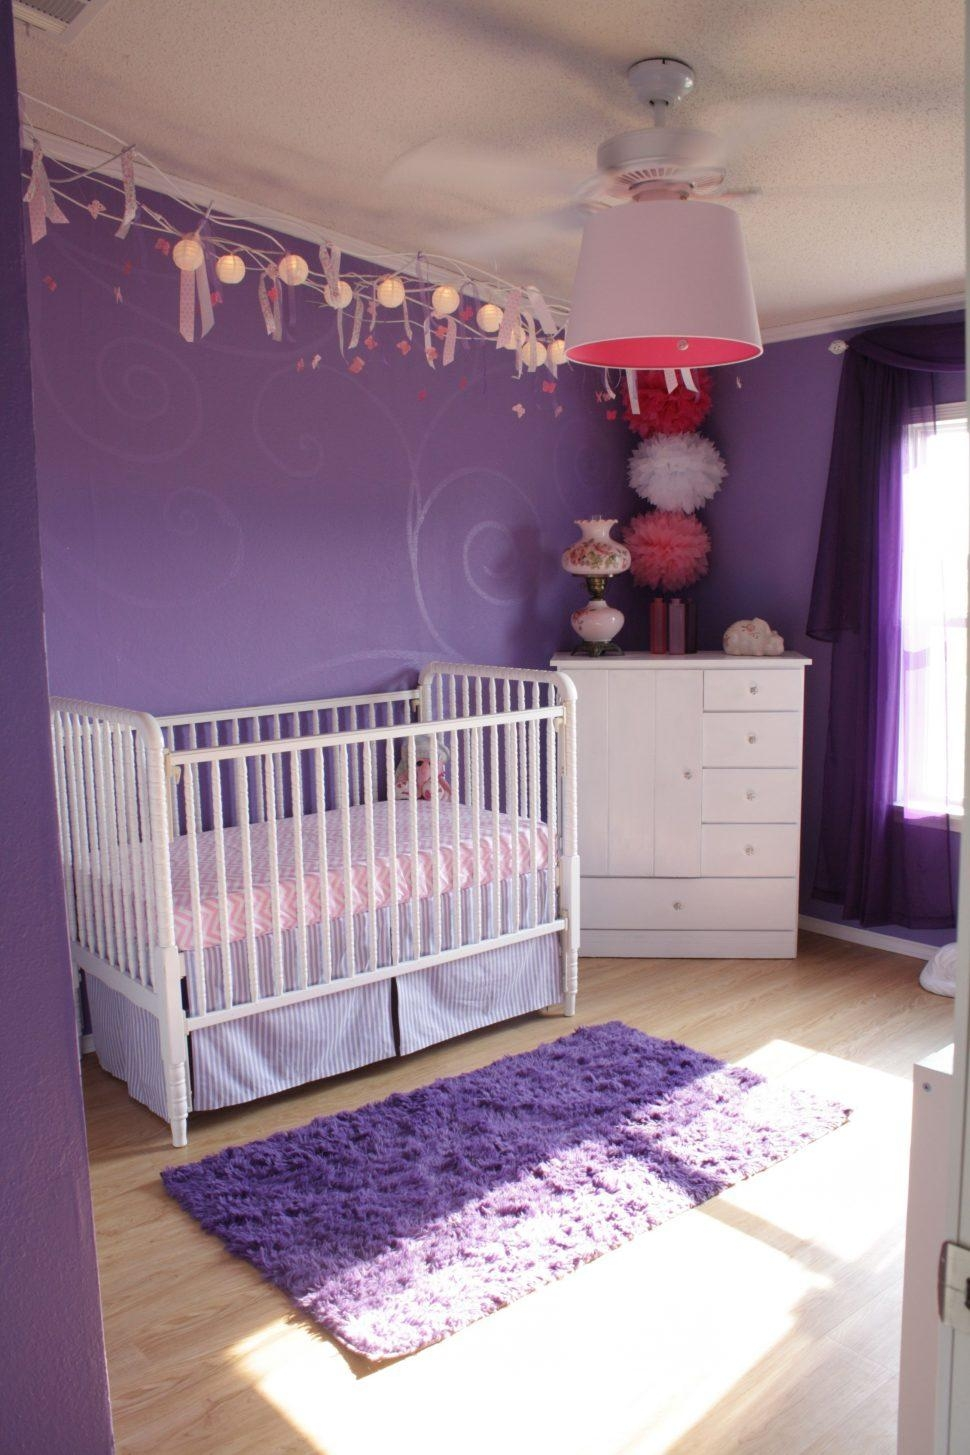 Wall Art Ideas: Purple Wall Art for Bedroom (Explore #19 of 20 Photos)